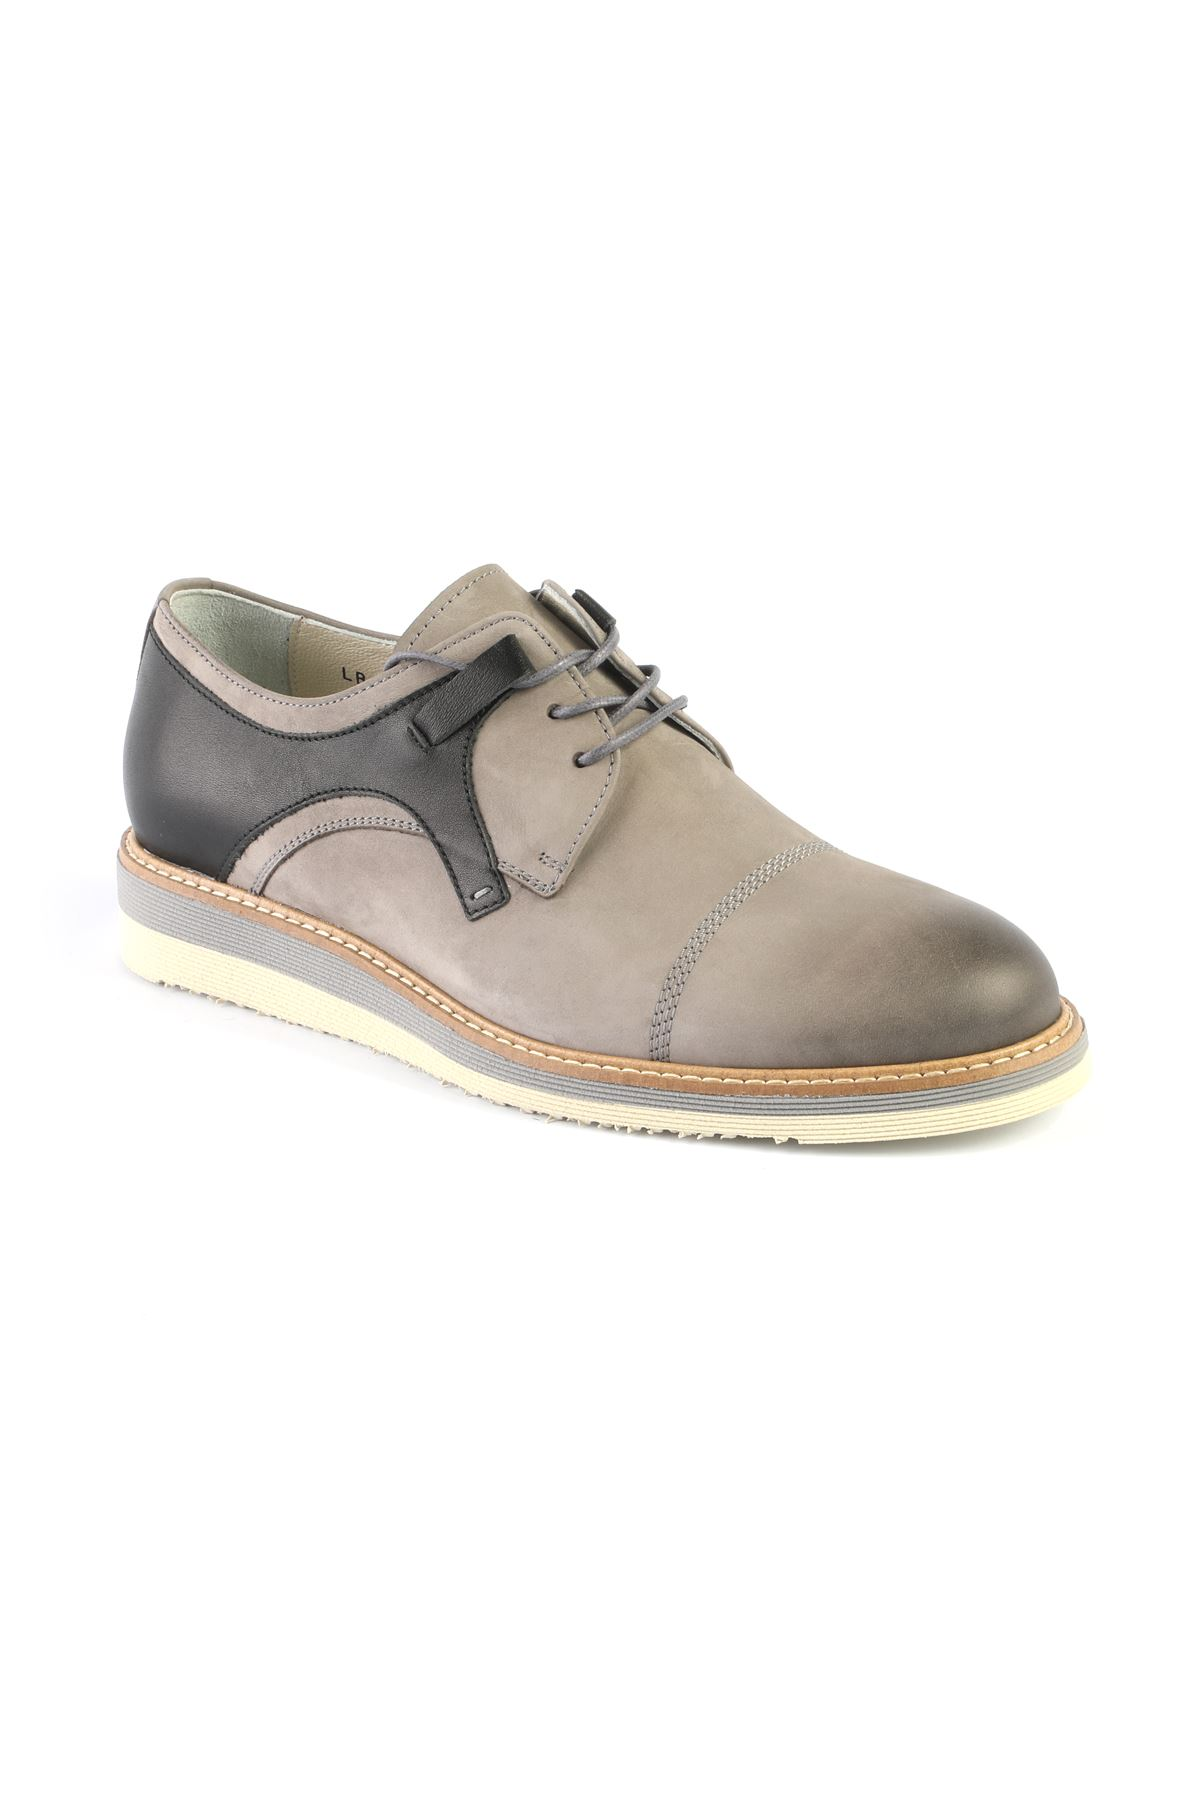 Libero 3387 Gray Casual Shoes